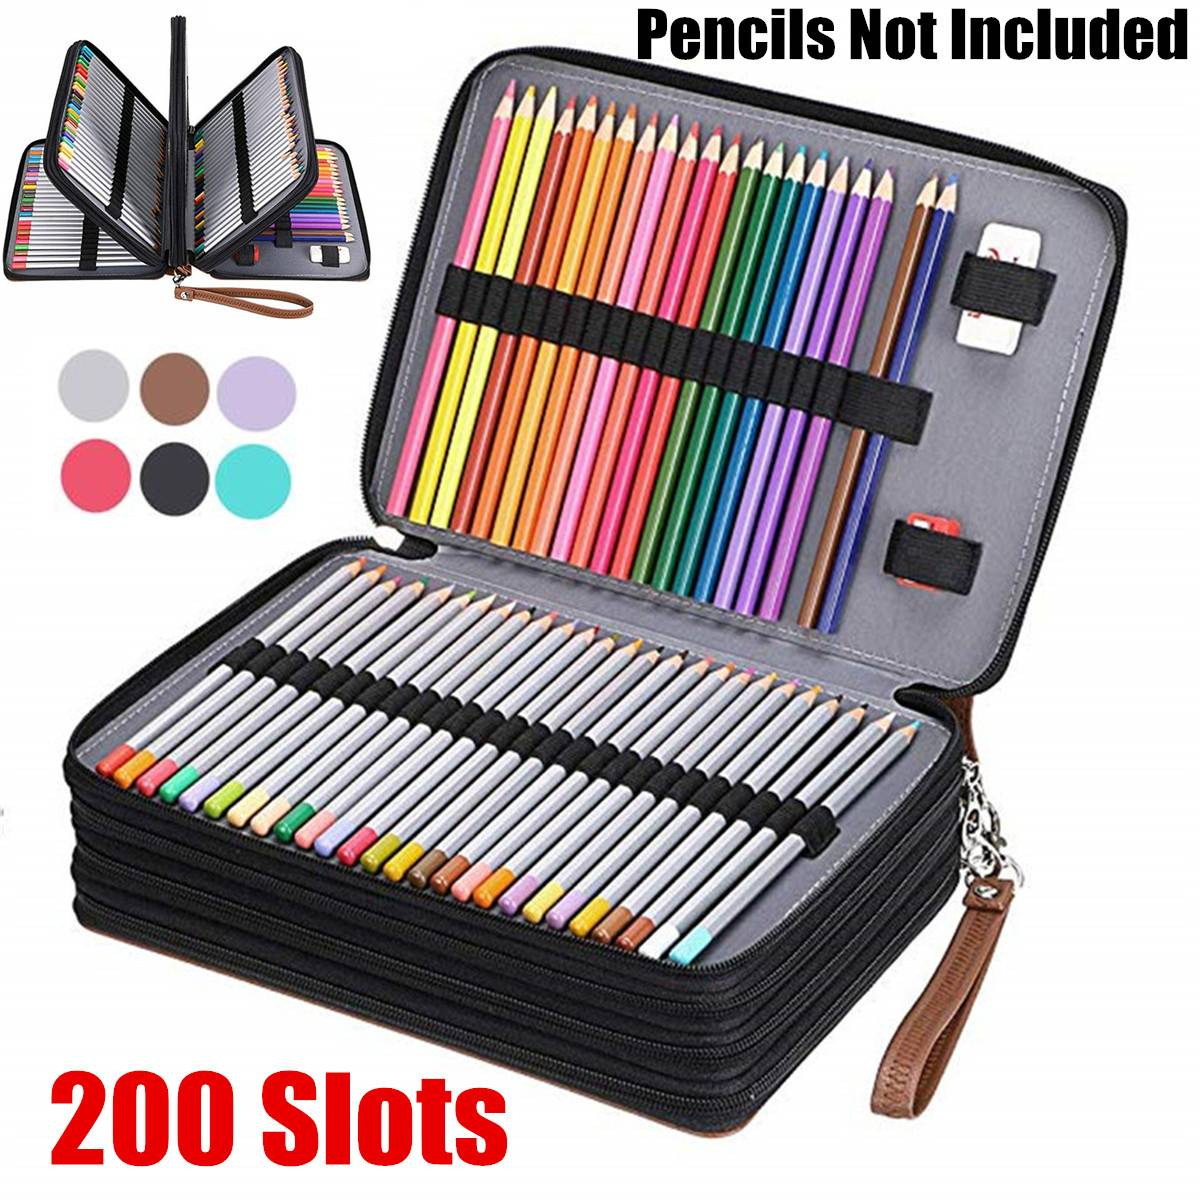 200 Slot Portable Colored Pencil Case Holder Waterproof Large Capacity PU Leather Pencil Bag Box For Student Gifts Art Supplies